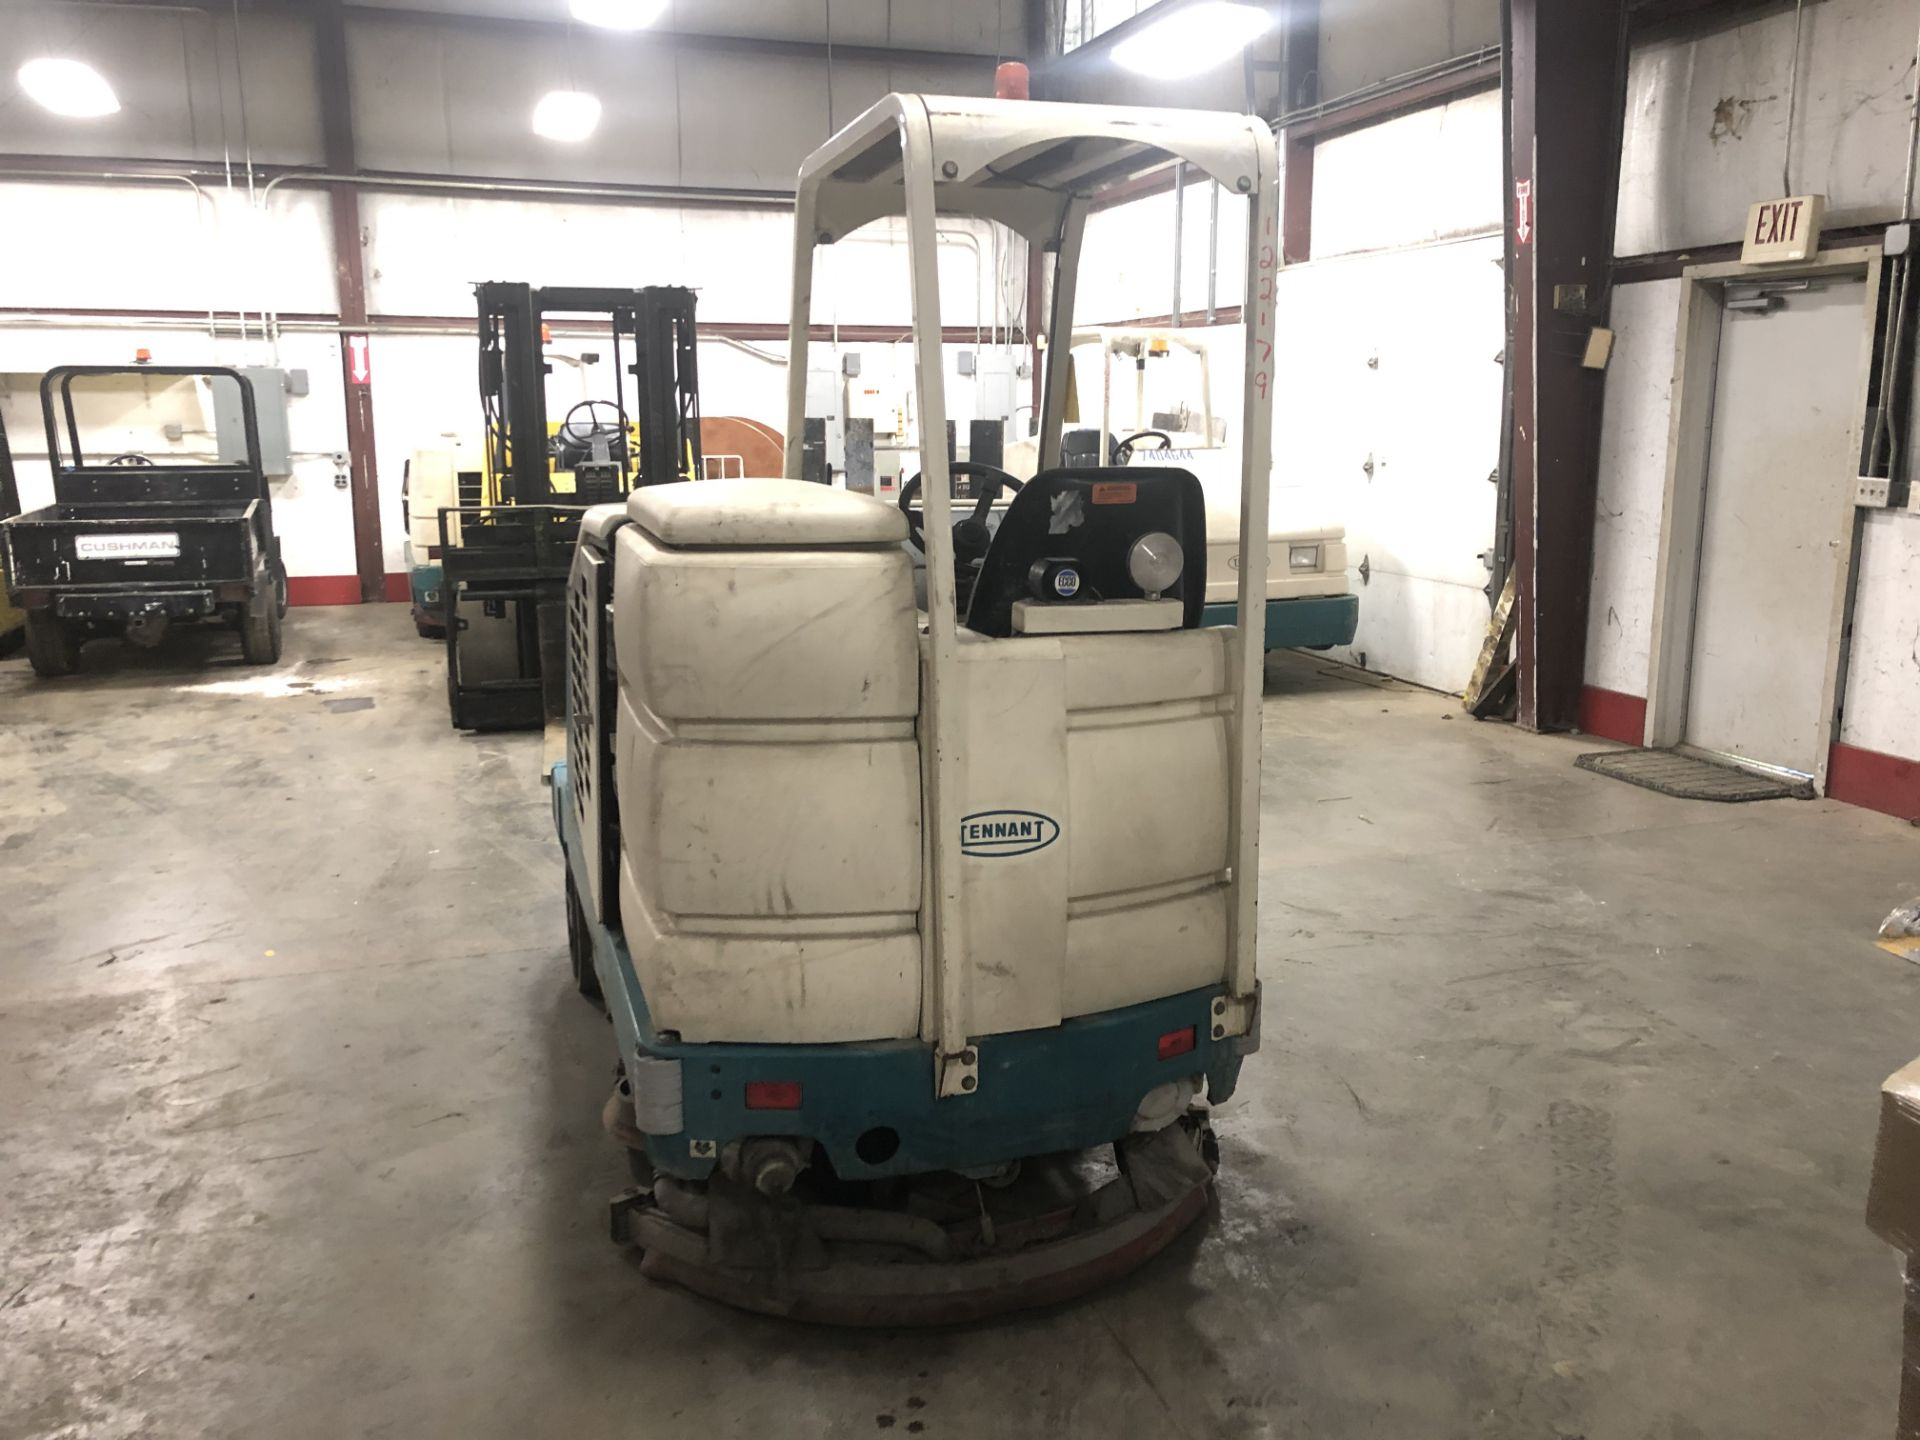 Lot 28 - Tennant Floor Sweeper/Scrubber Model: 8210, S/N: 8210-10066, LPG, 1,118 HRS, Vortec 1600 Engine